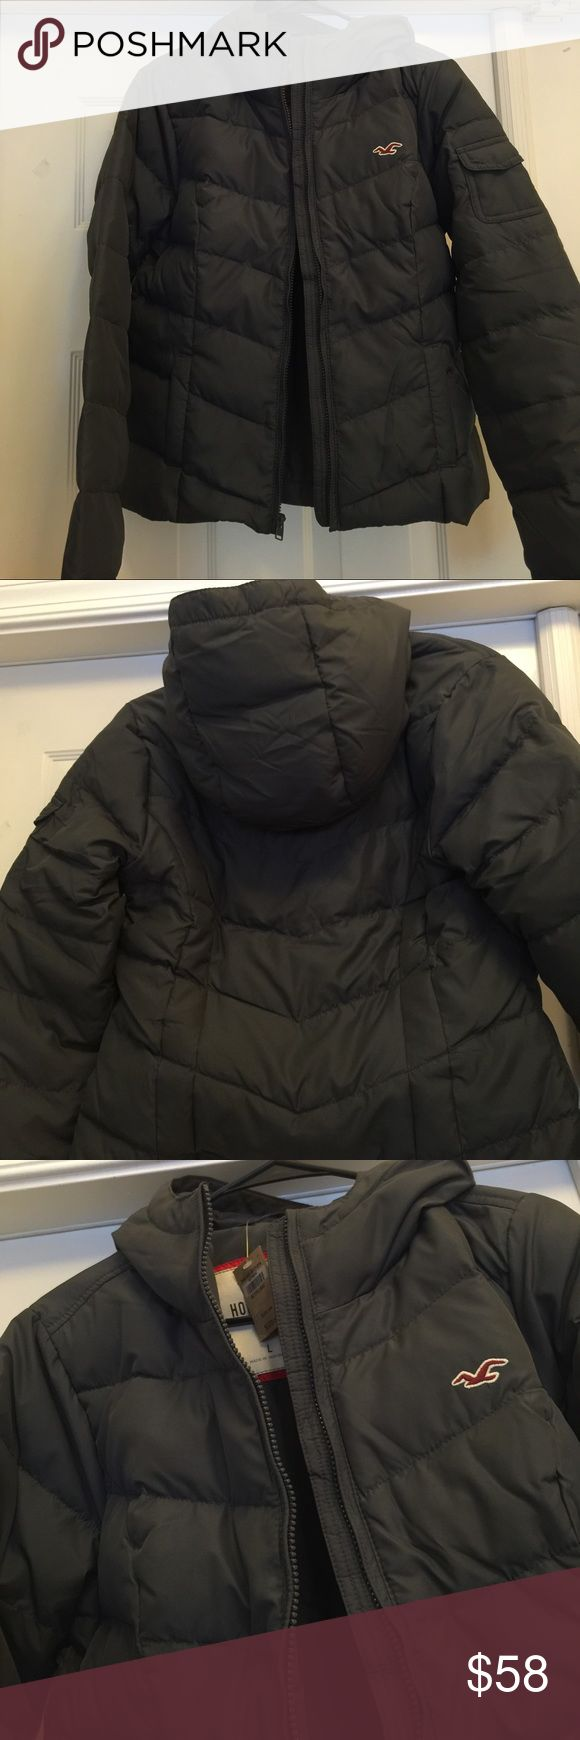 Hollister jacket NEW!!with tags,never worn,padded jacket,zipper front,two pockets,small pocket on sleeve.Final Reduction😊price is firm.and a great bargain!! Hollister Jackets & Coats